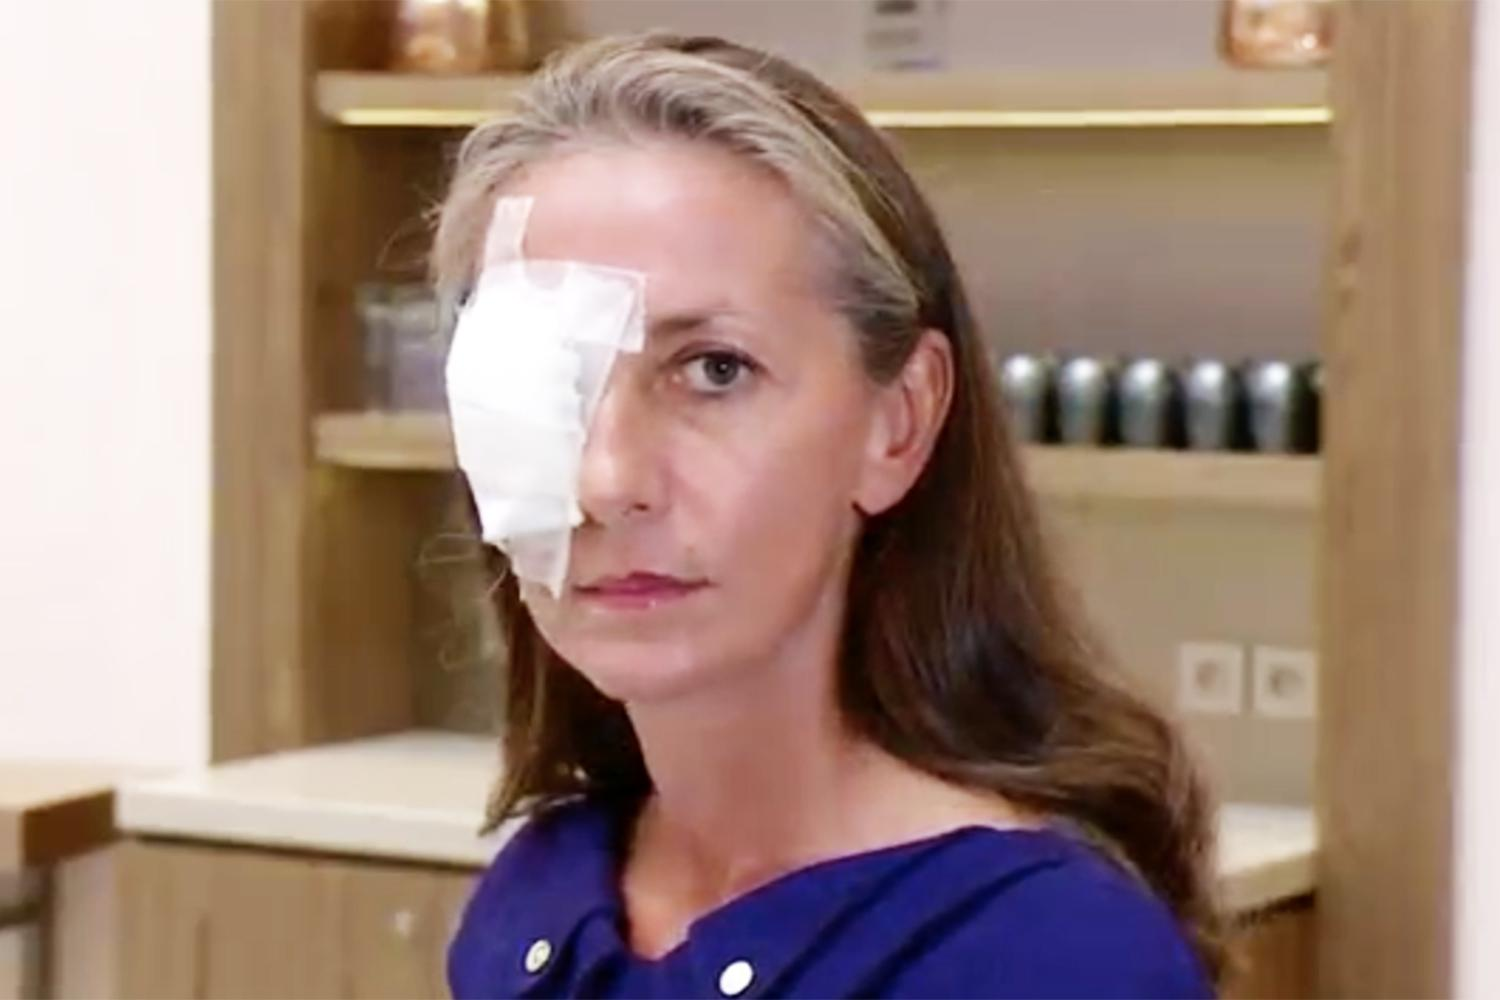 Corine Remande has been left blind in her right eye after being struck in the face by a ball